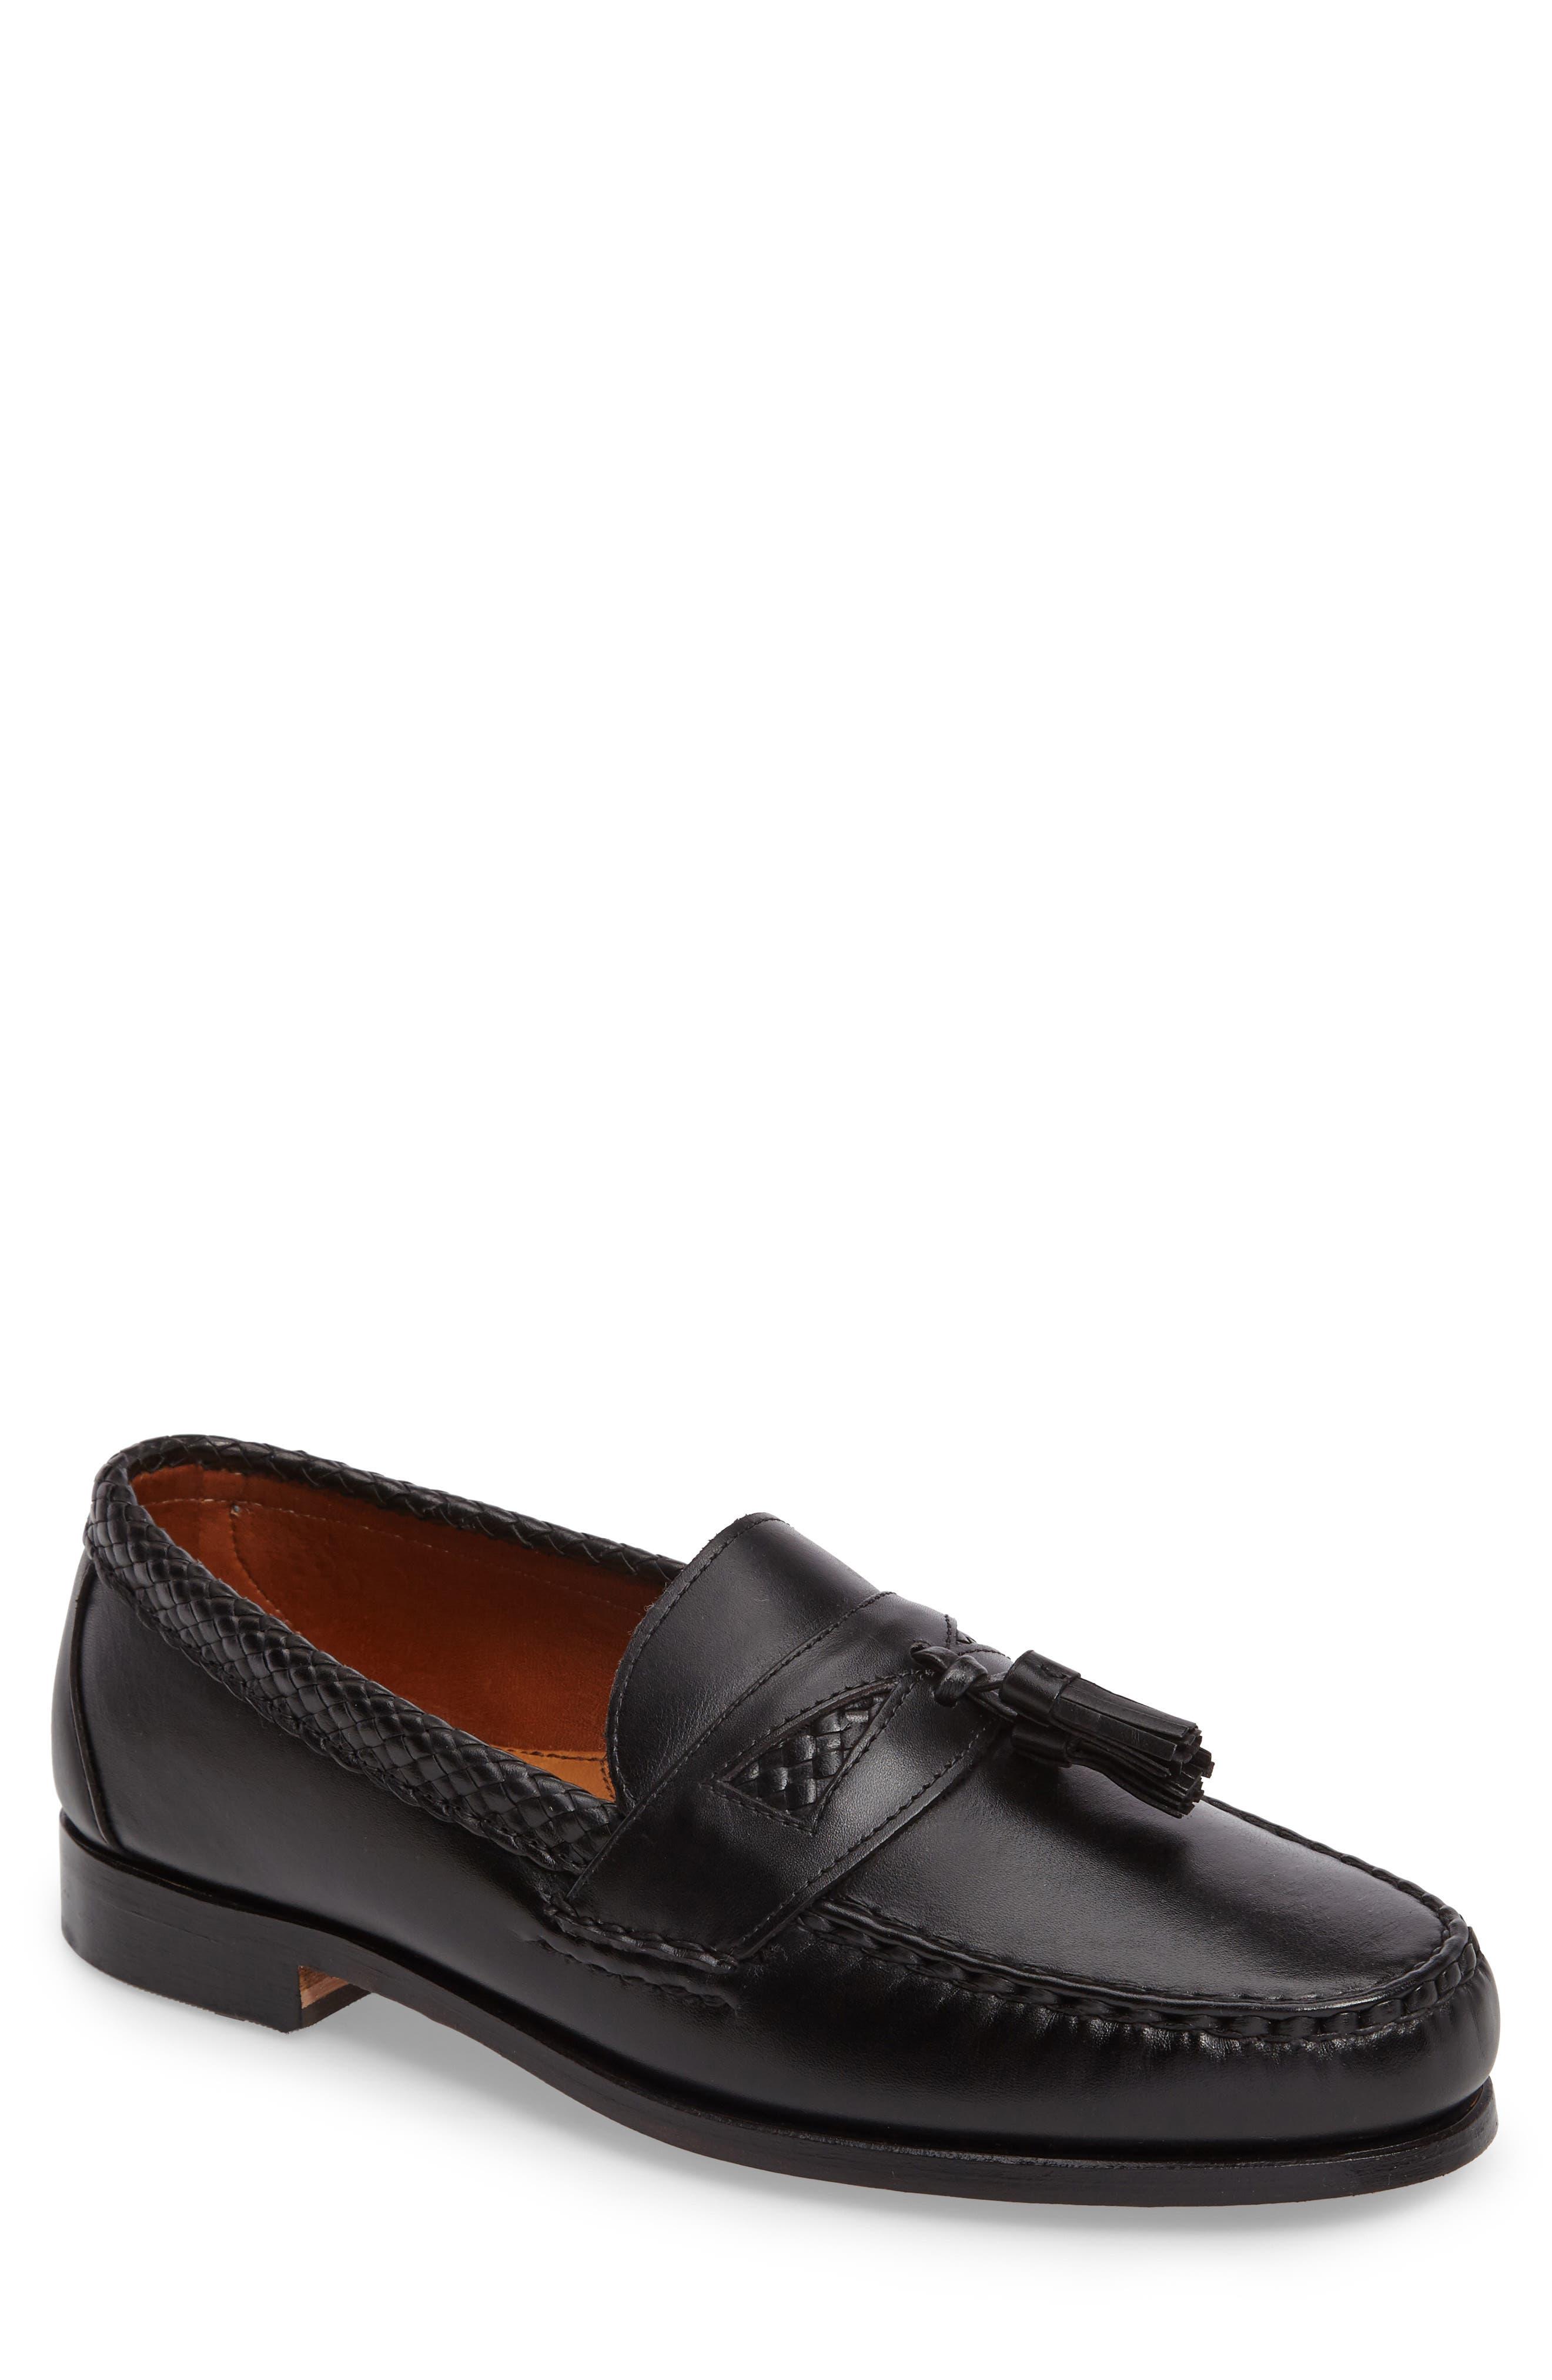 'Maxfield' Loafer,                             Main thumbnail 1, color,                             Black